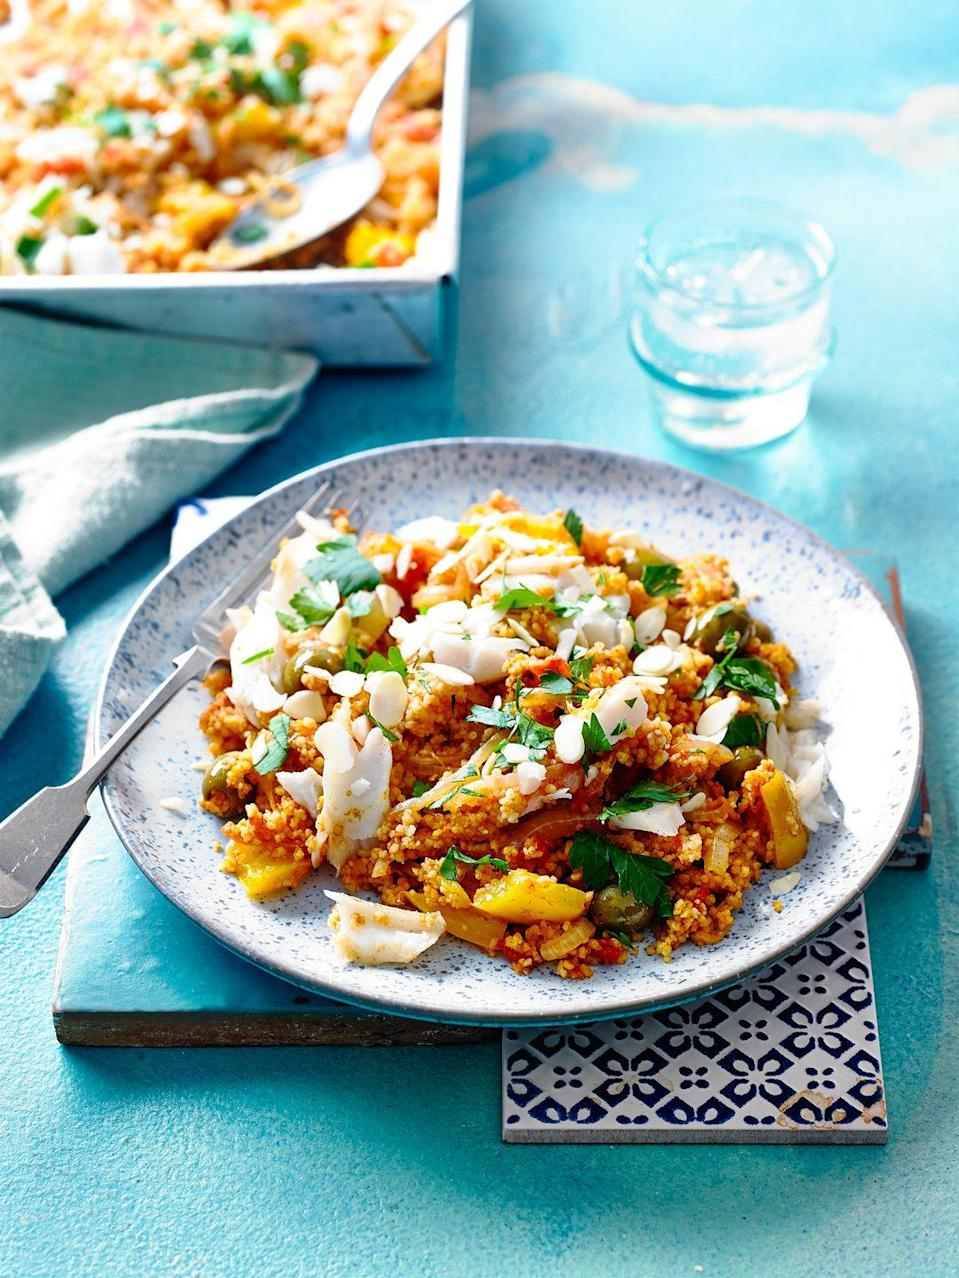 """<p>Harissa paste is a great flavour enhancer to keep in your fridge for whenever you need some spice.</p><p><strong>Recipe: <a href=""""https://www.goodhousekeeping.com/uk/food/recipes/a29103312/fish-tagine-traybake/"""" rel=""""nofollow noopener"""" target=""""_blank"""" data-ylk=""""slk:Fragrant Fish Tagine Traybake"""" class=""""link rapid-noclick-resp"""">Fragrant Fish Tagine Traybake</a></strong></p>"""